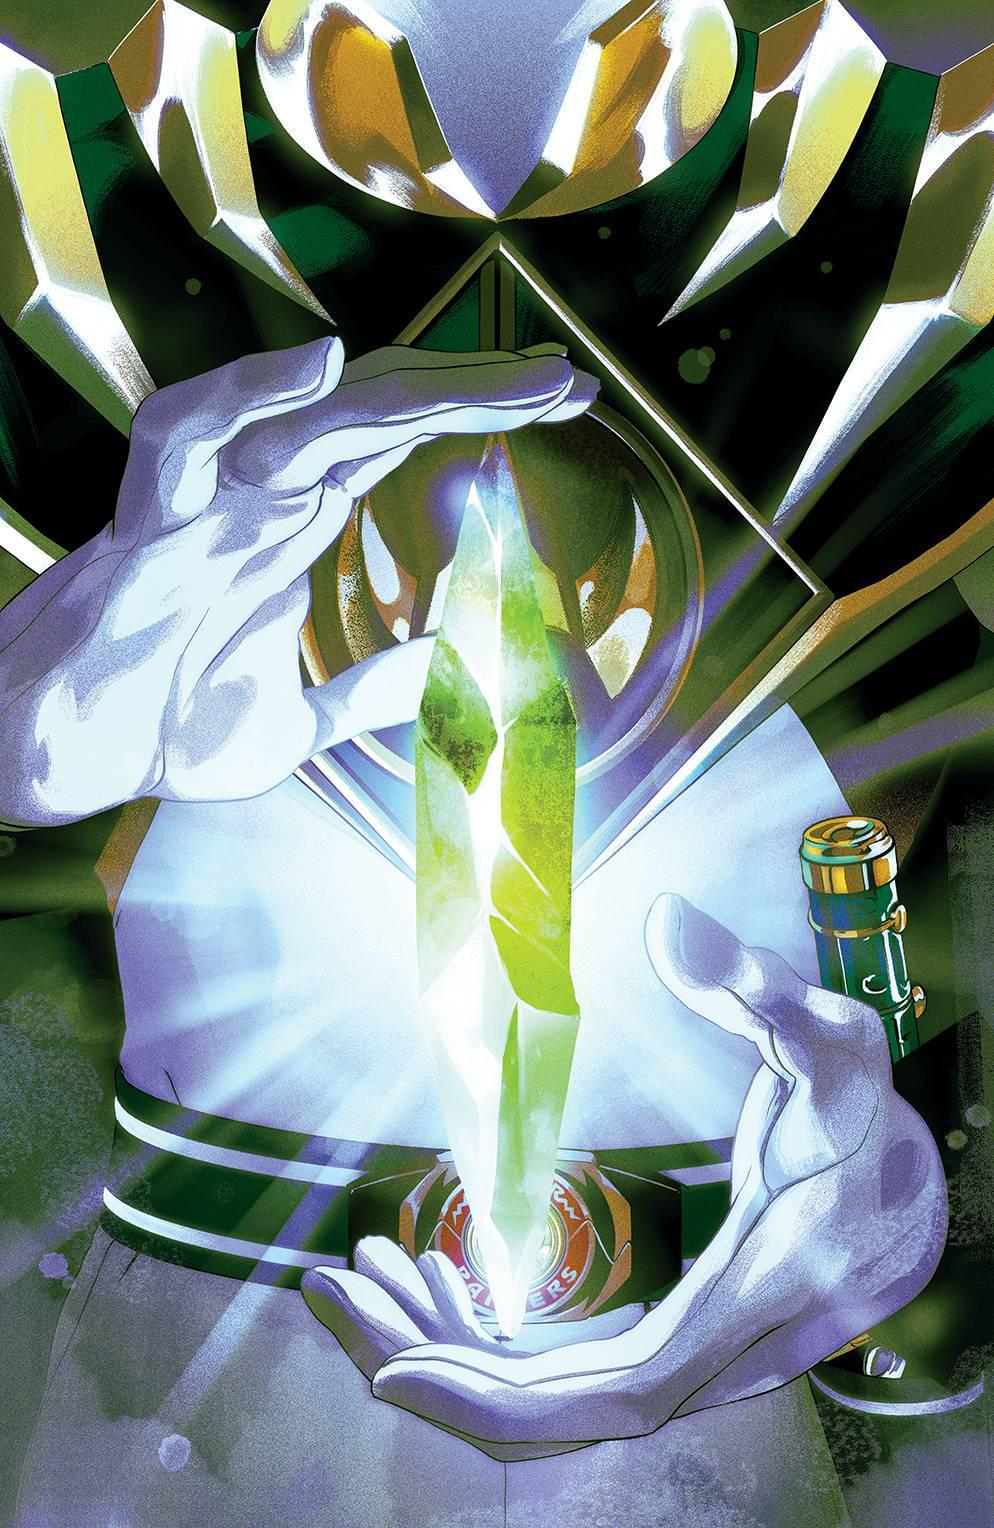 MIGHTY MORPHIN POWER RANGERS #54 FOIL MONTES VARIANT